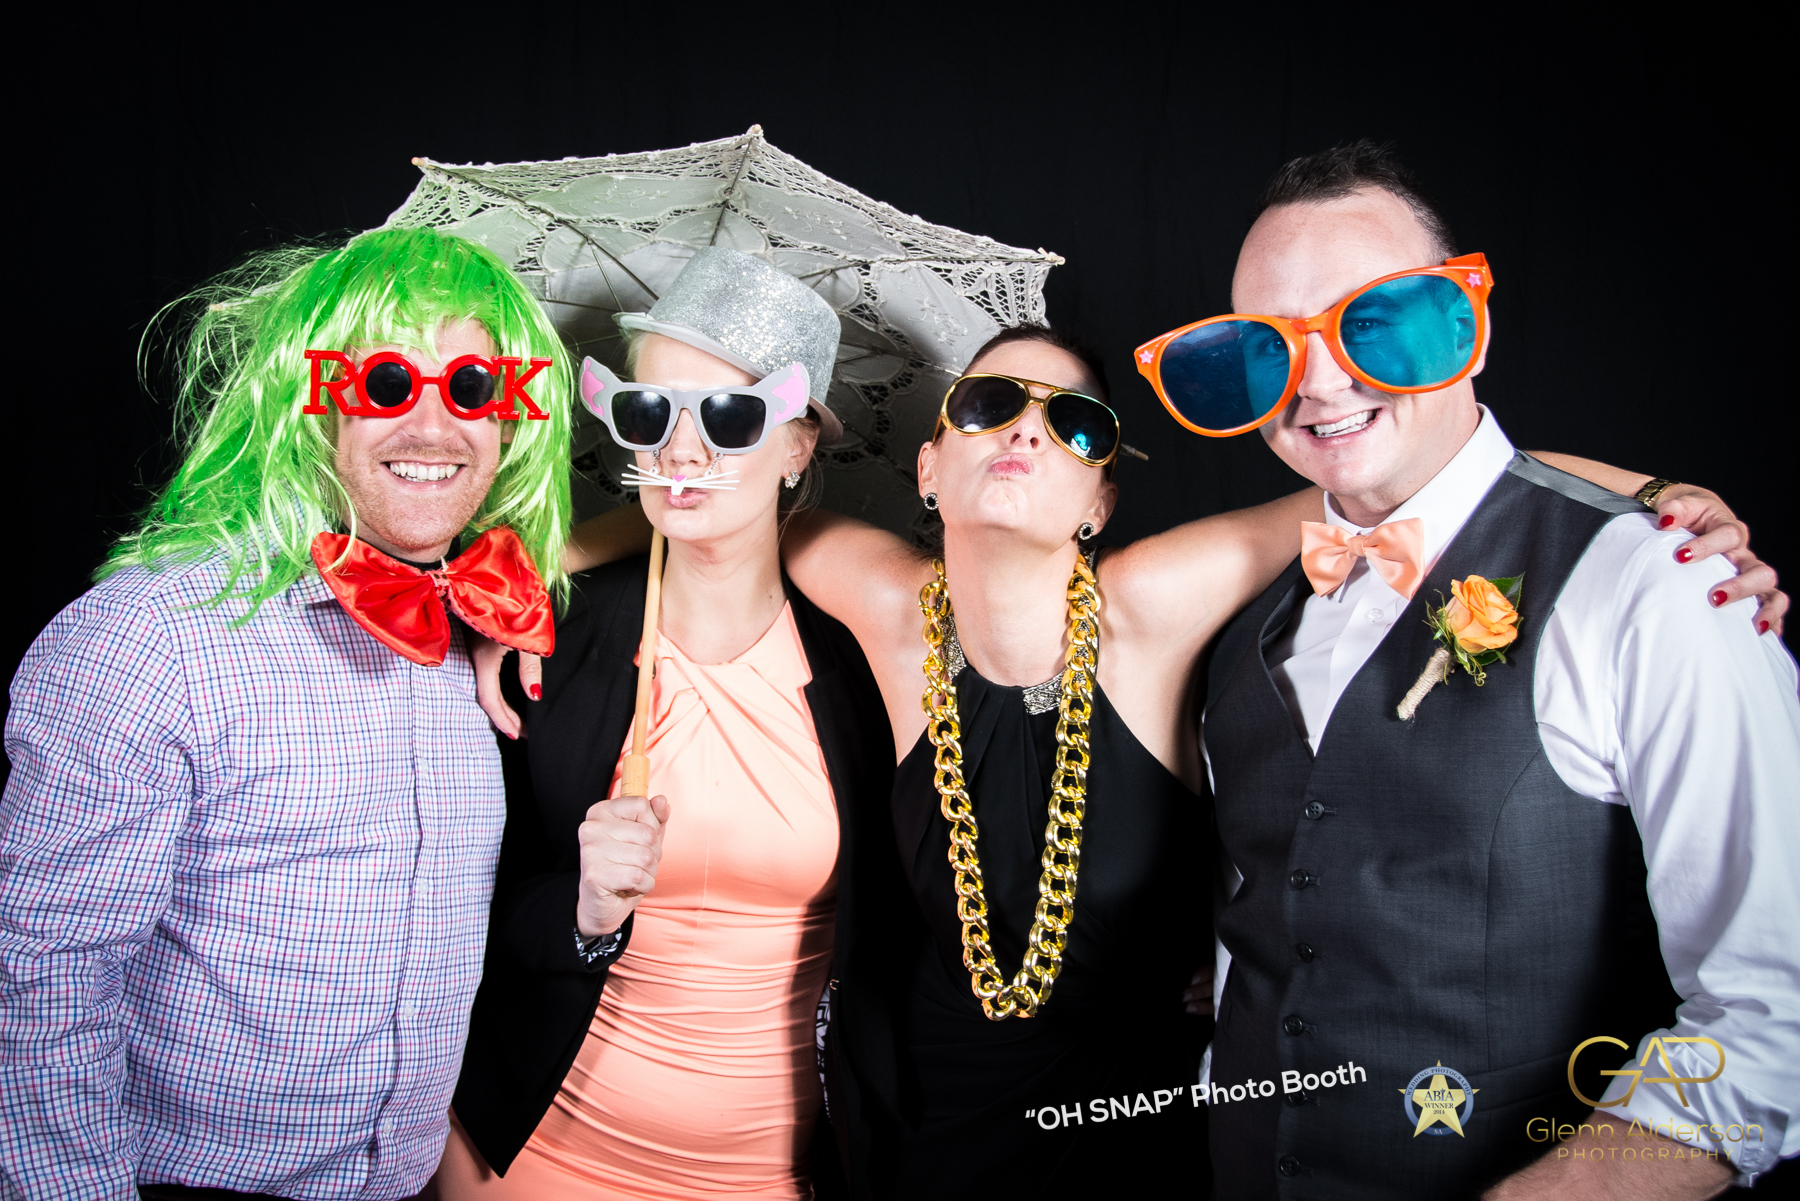 Adelaide Photo booth (19 of 20)